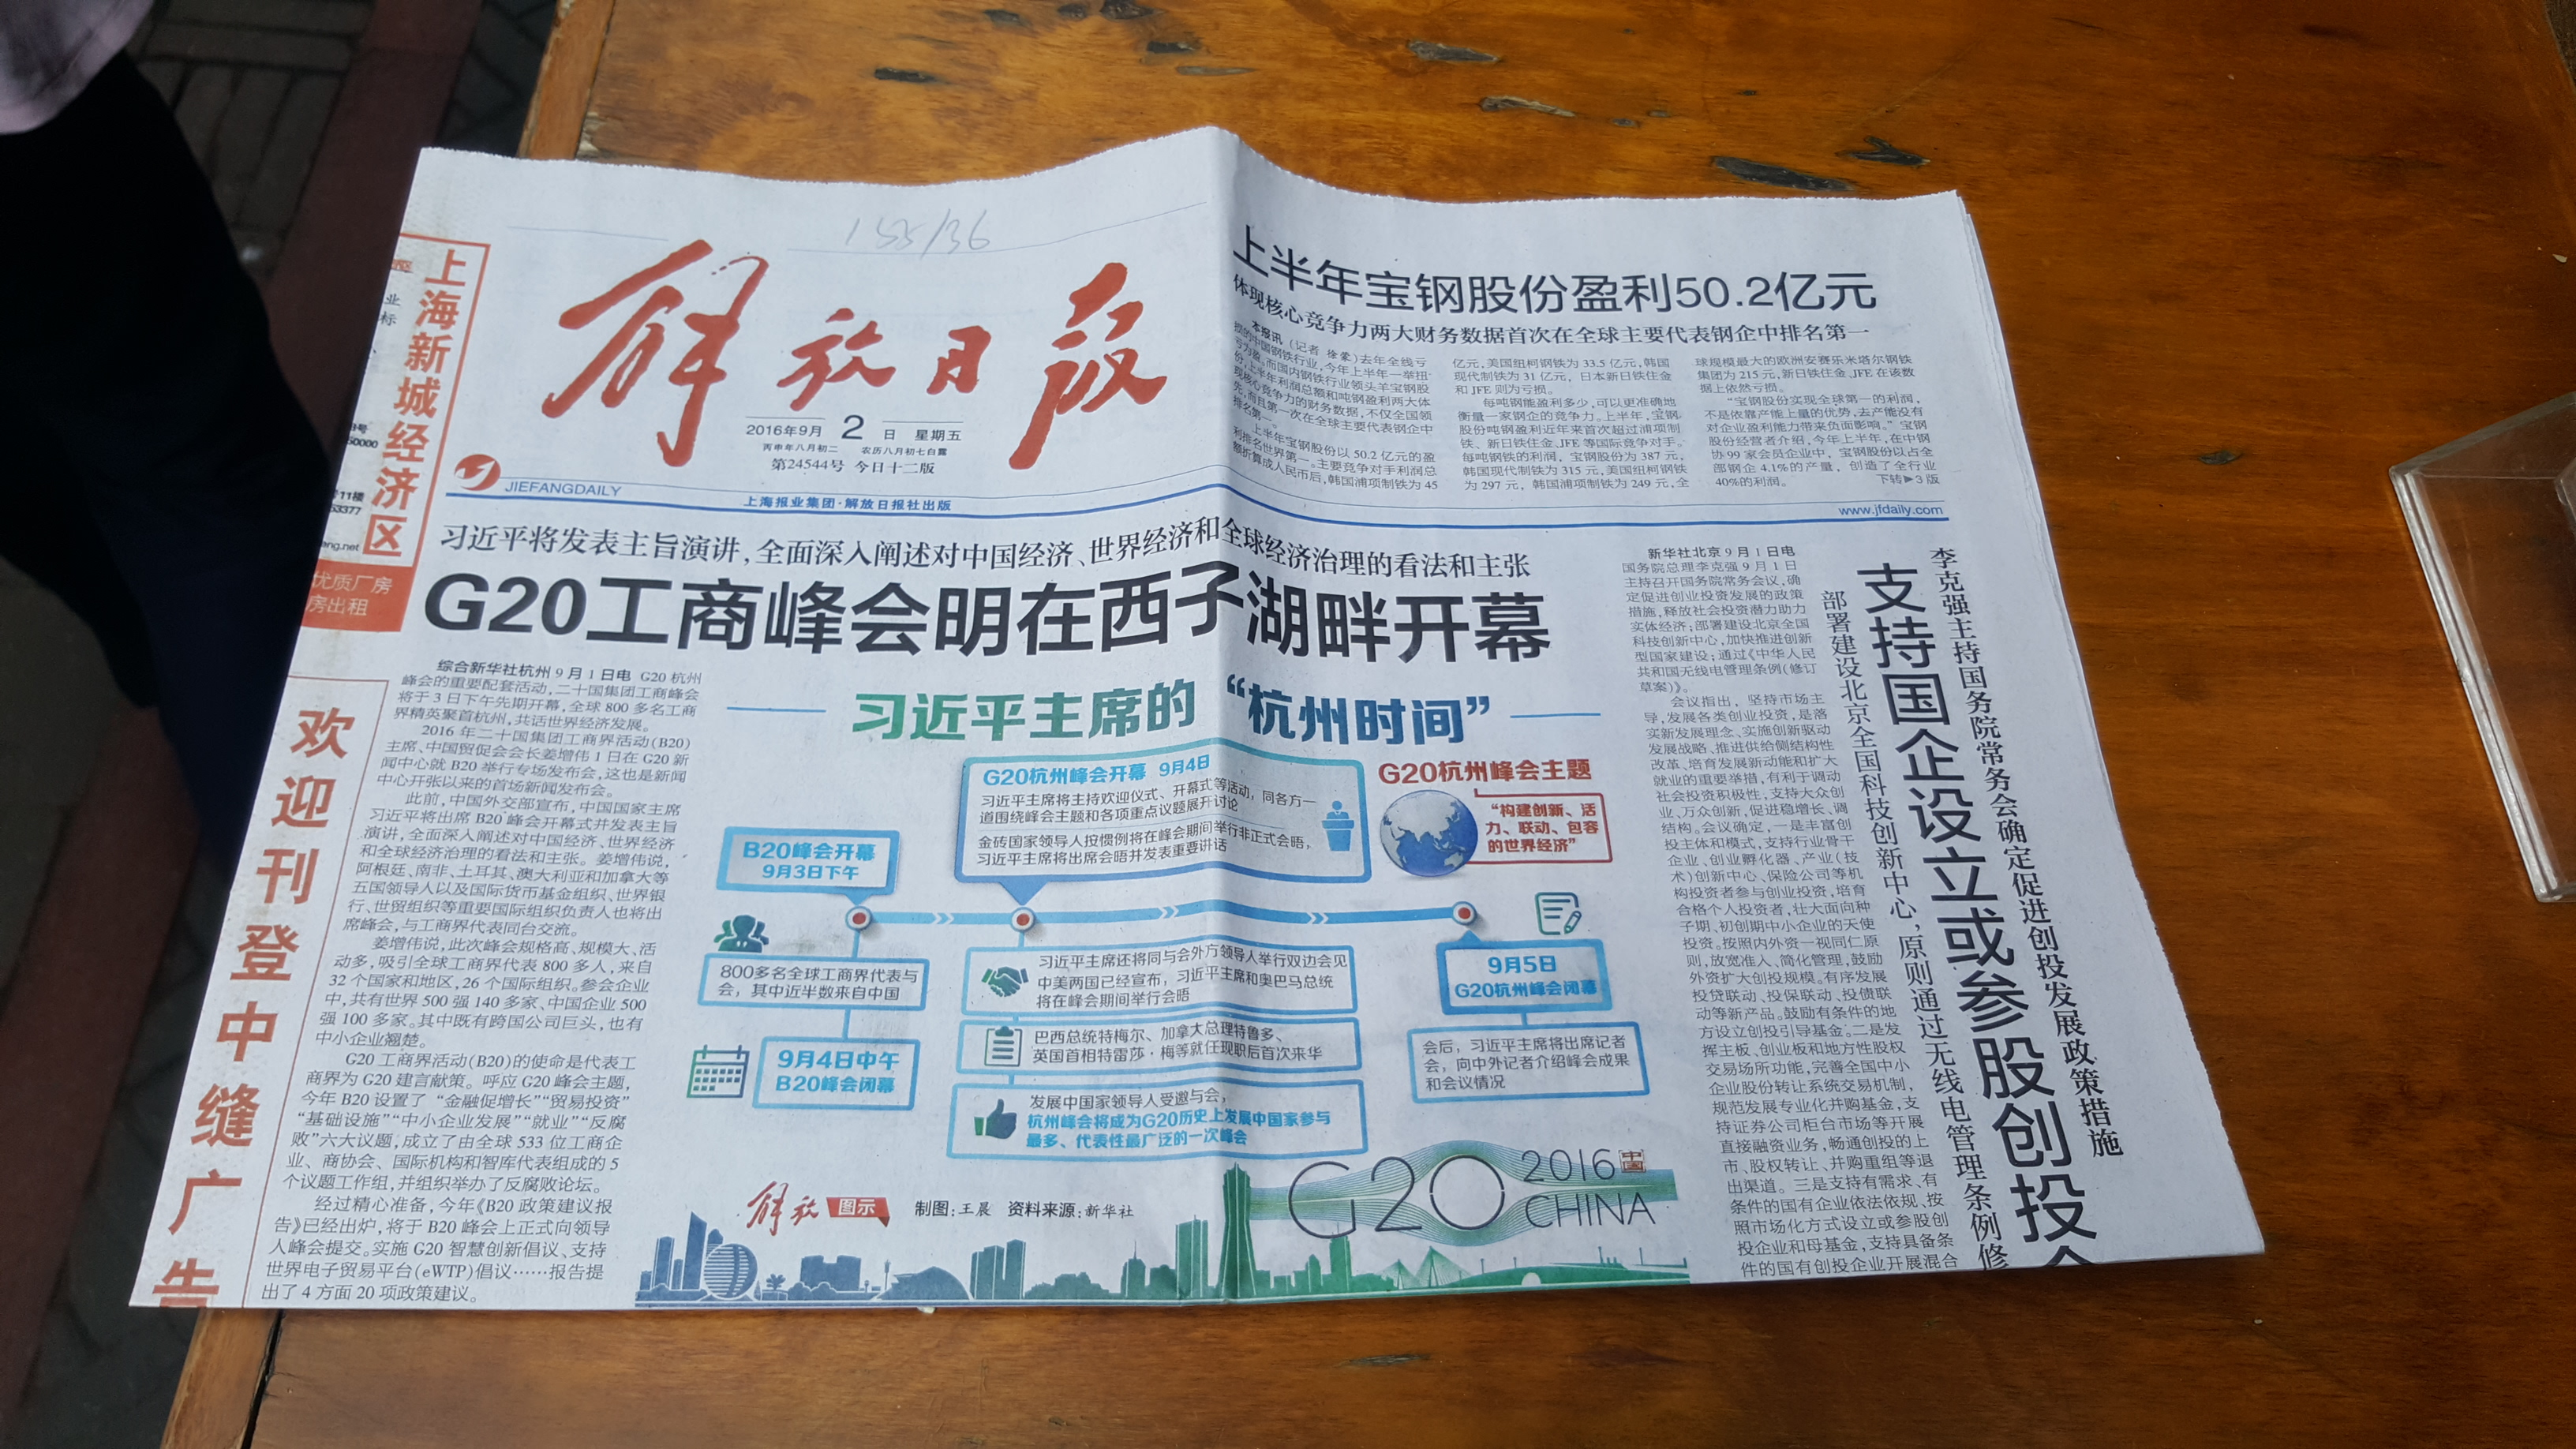 'Tianzifang' - Chinese Newspaper, photo by Tash Leviton